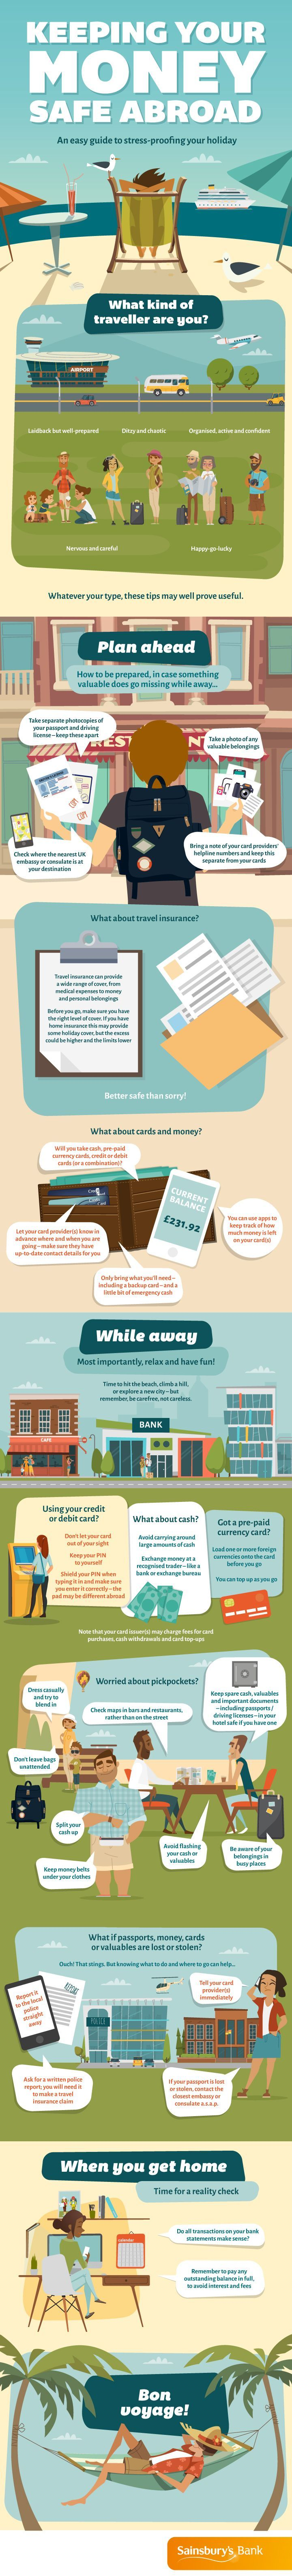 Keeping Your Money Safe Abroad #Infographic #Travel #Money